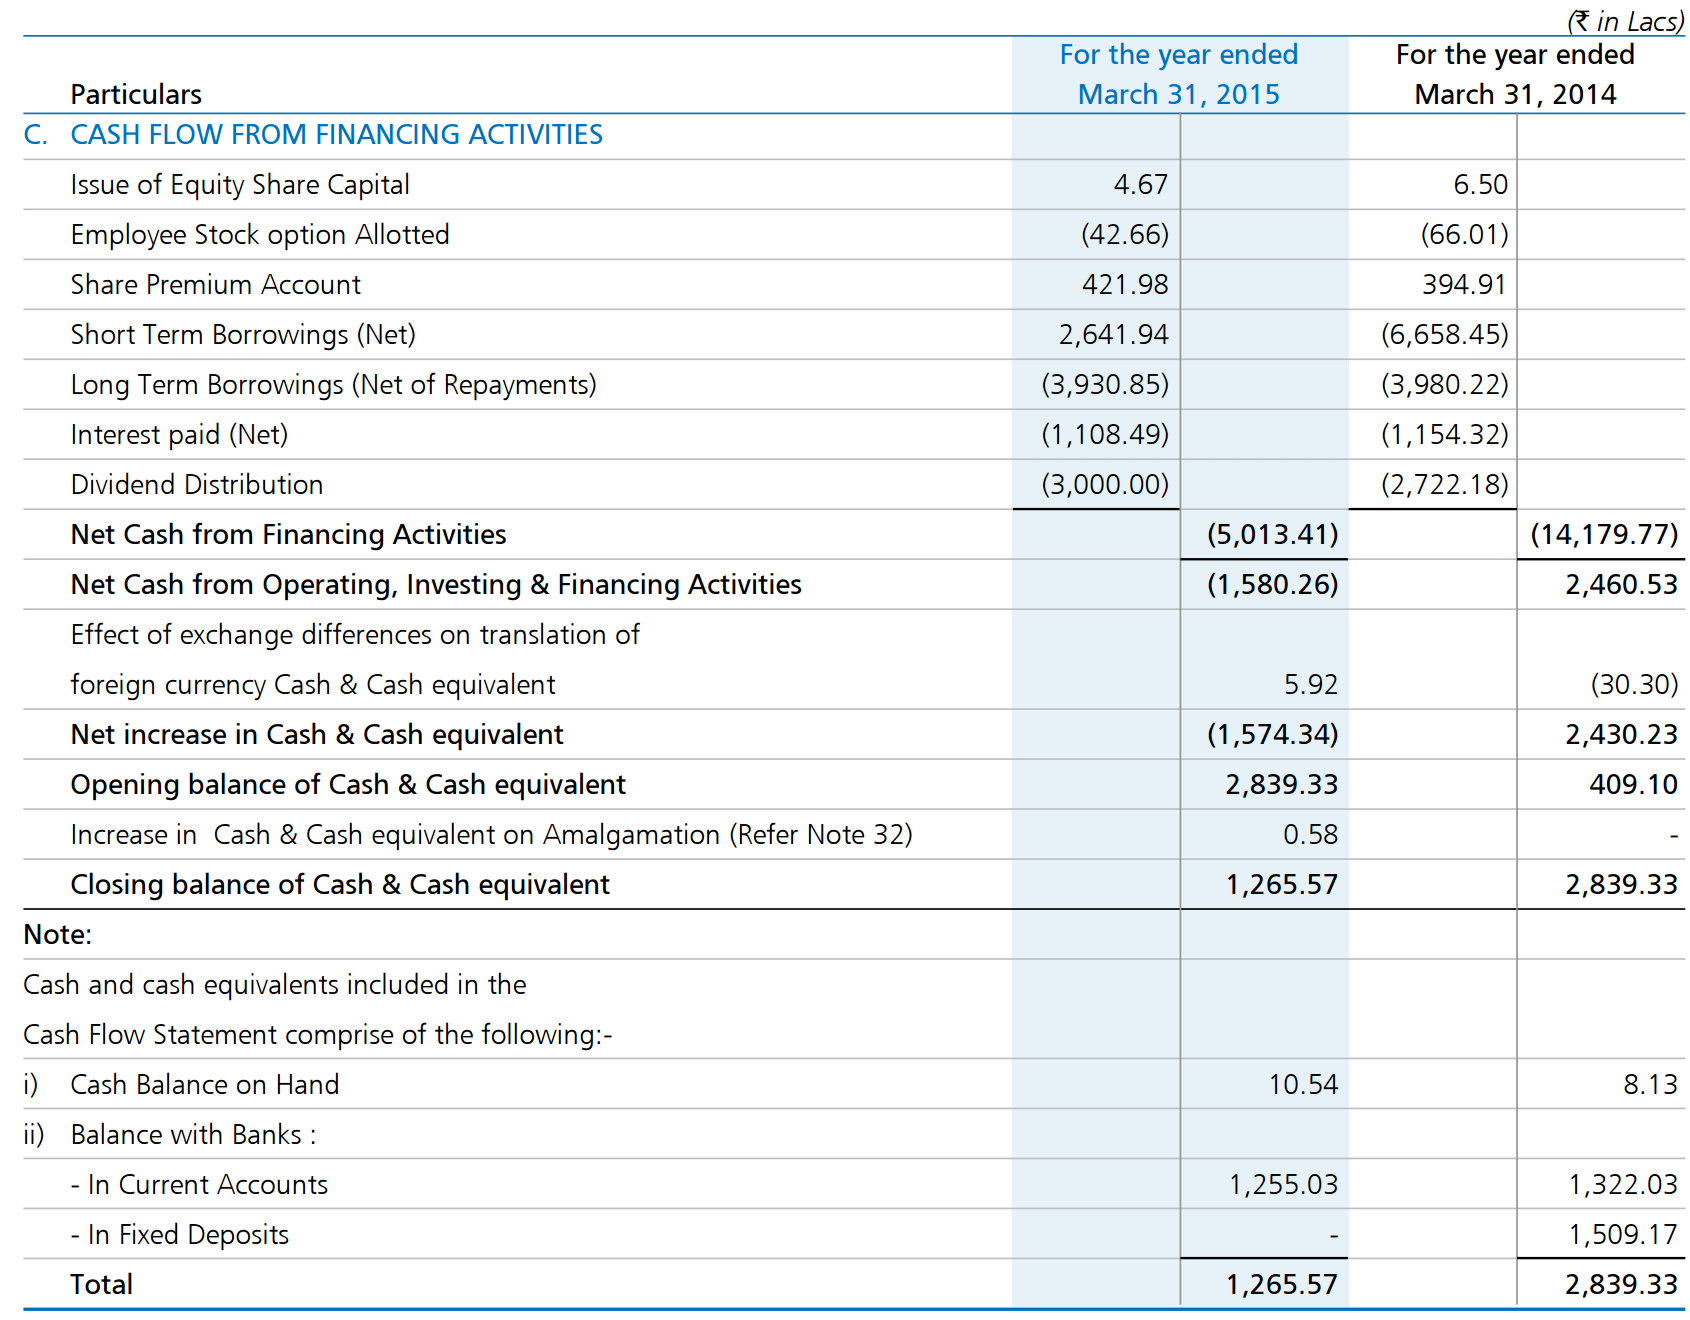 Financialysis Cash Flow Statement